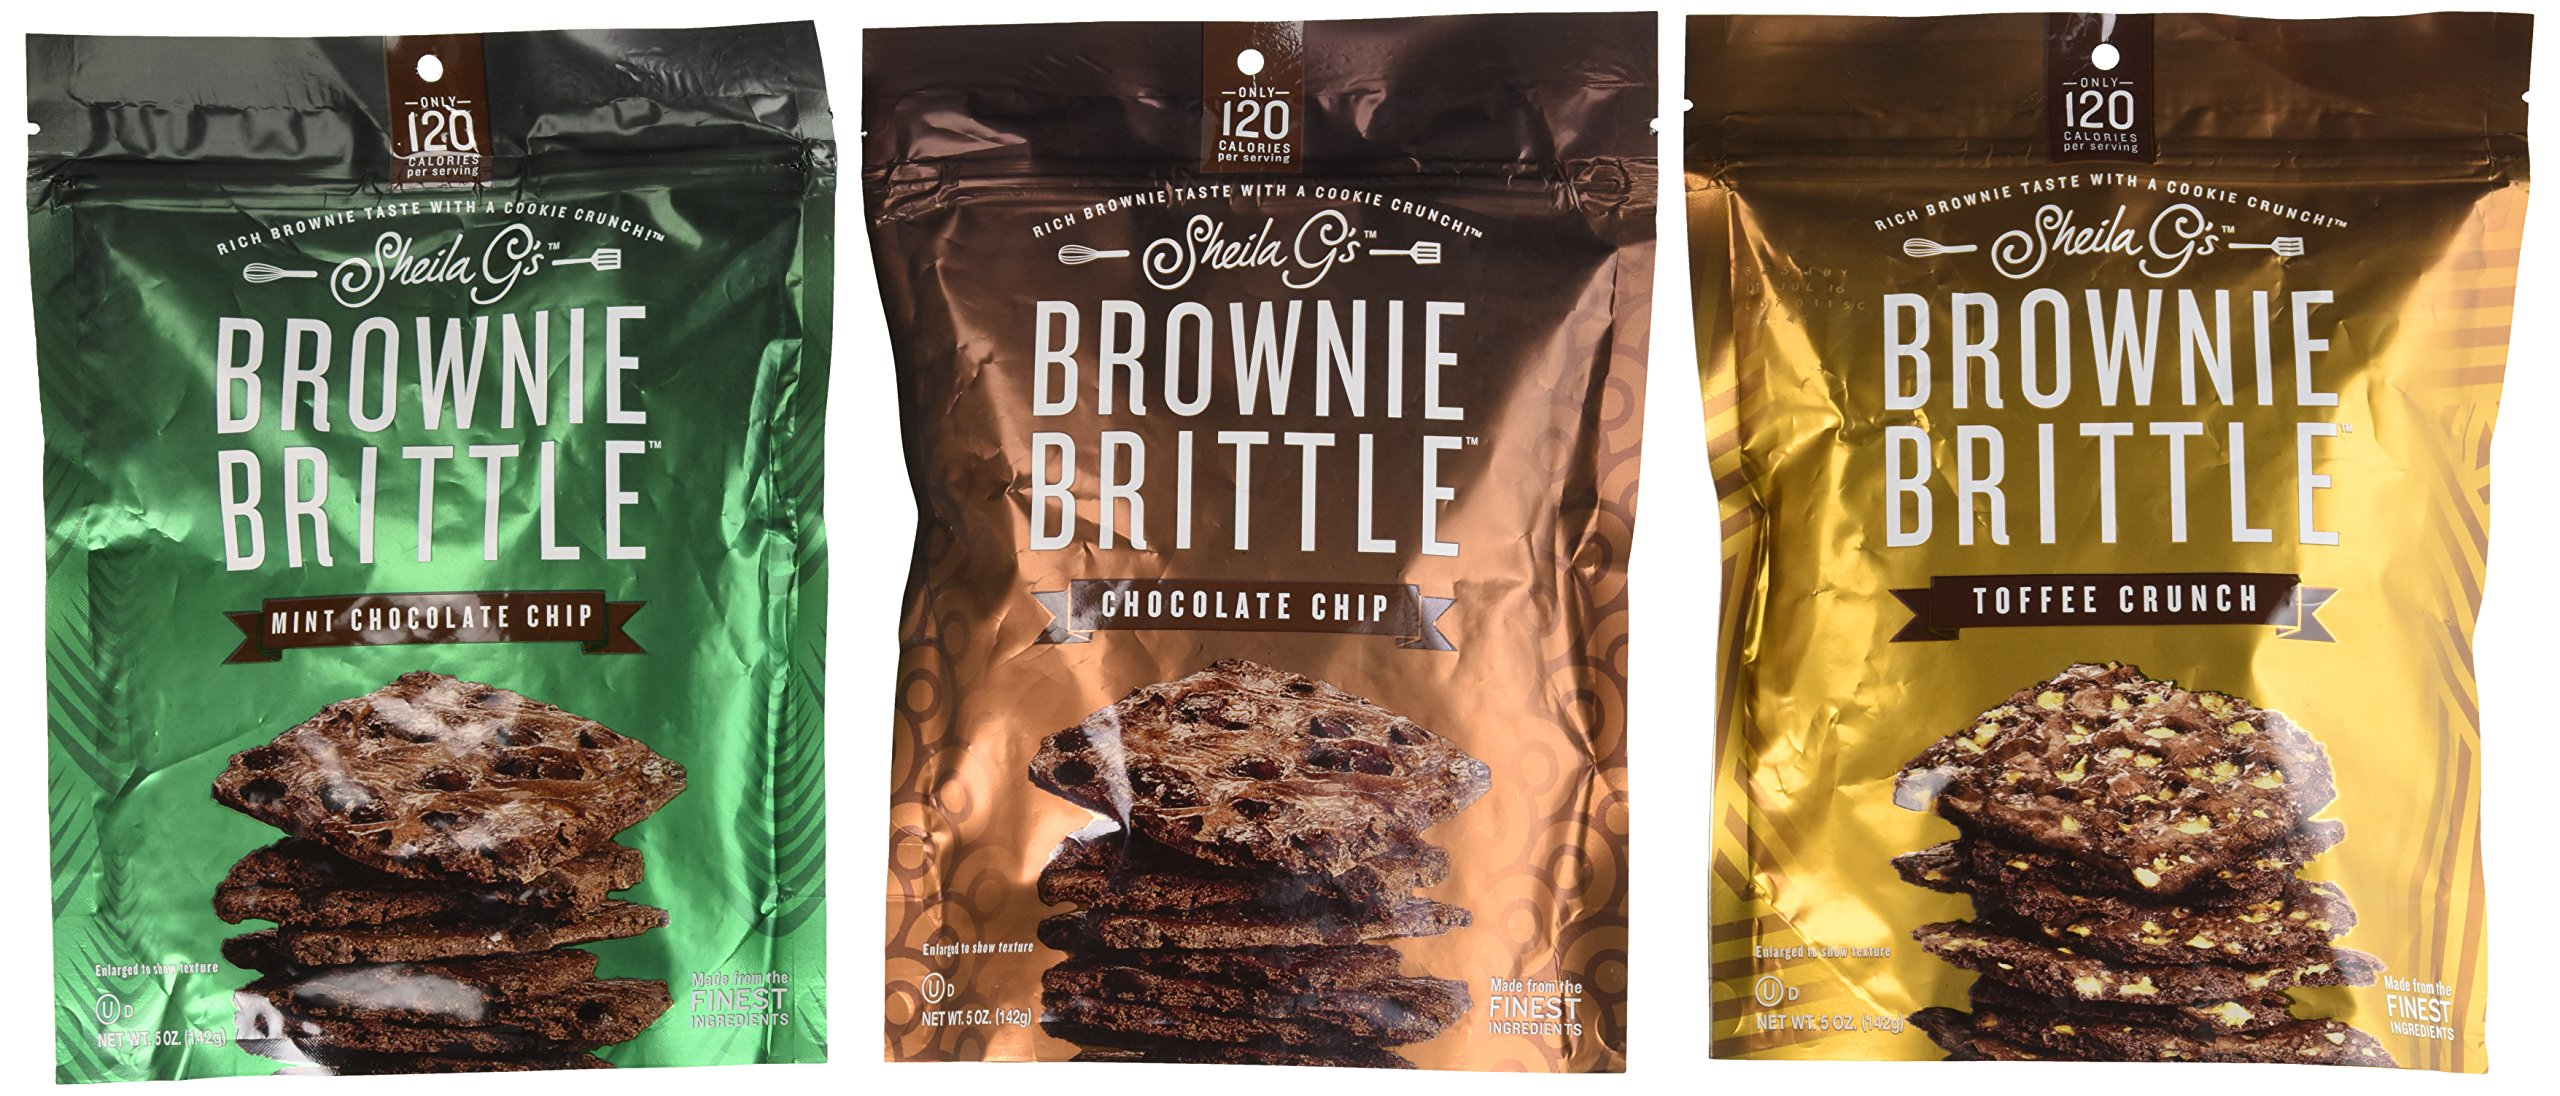 Sheila G's Brownie Brittle 3 Flavor Variety Pack: (1) Sheila G's Chocolate Chip Brownie Brittle, (1) Sheila G's Mint Chocolate Chip Brownie Brittle, and (1) Sheila G's Toffee Crunch Brownie Brittle, 5 Oz. Ea. (3 Bags Total)